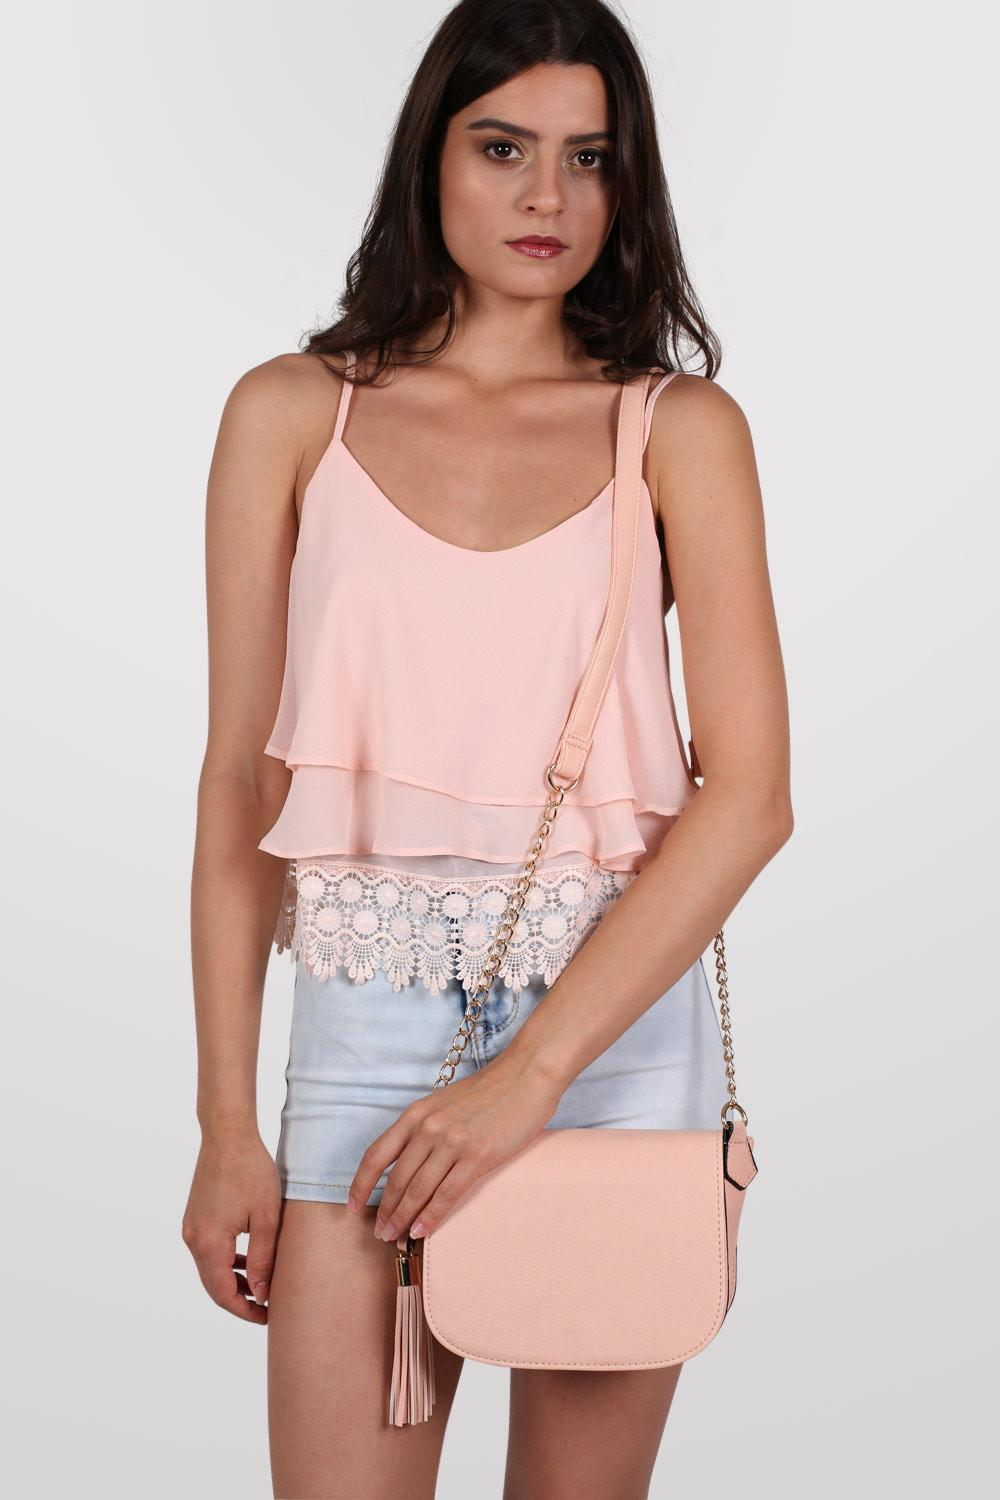 Tassel Detail Saddle Shoulder Bag in Nude 0